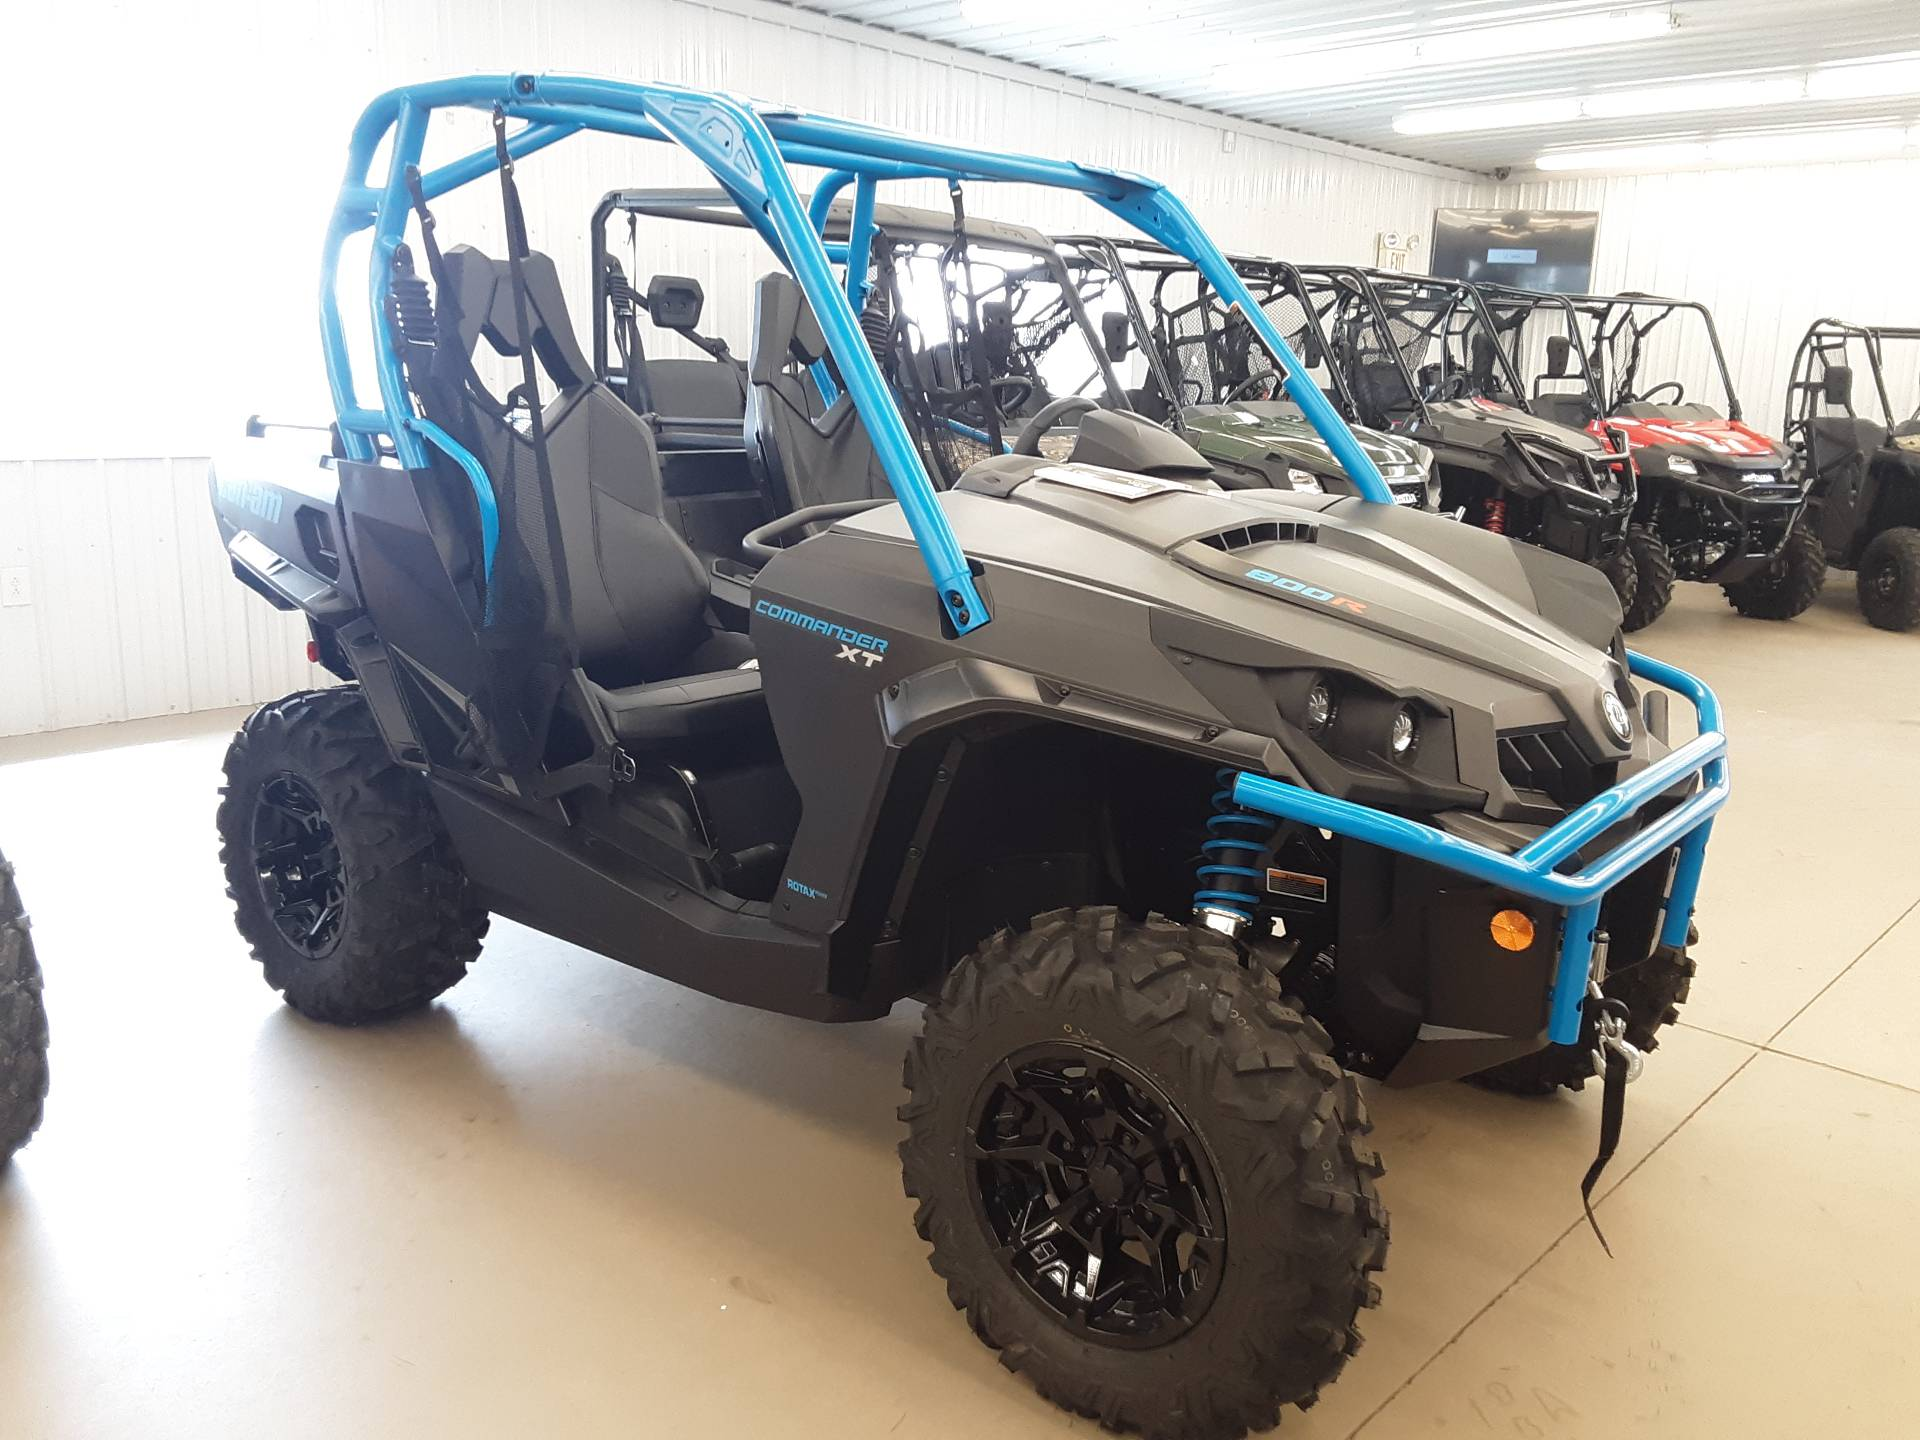 2019 Can-Am Commander XT 800R in Harrisburg, Illinois - Photo 1